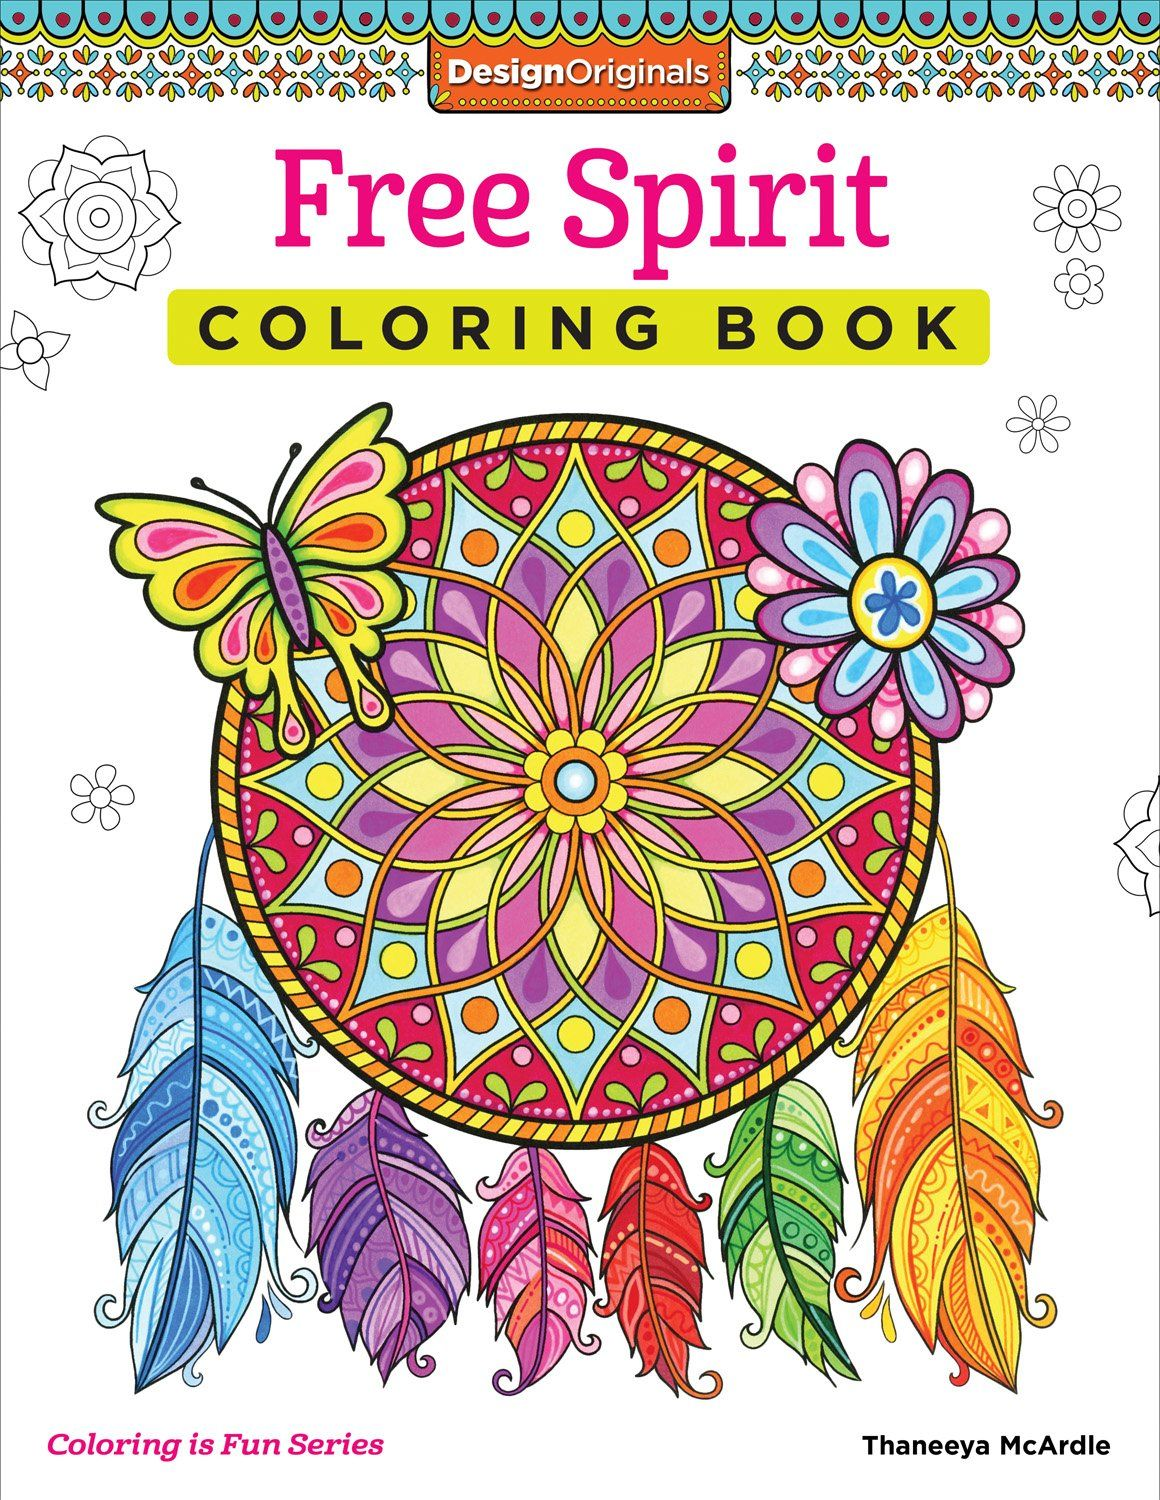 Free Spirit coloring book | Coloring | Pinterest | Coloring books